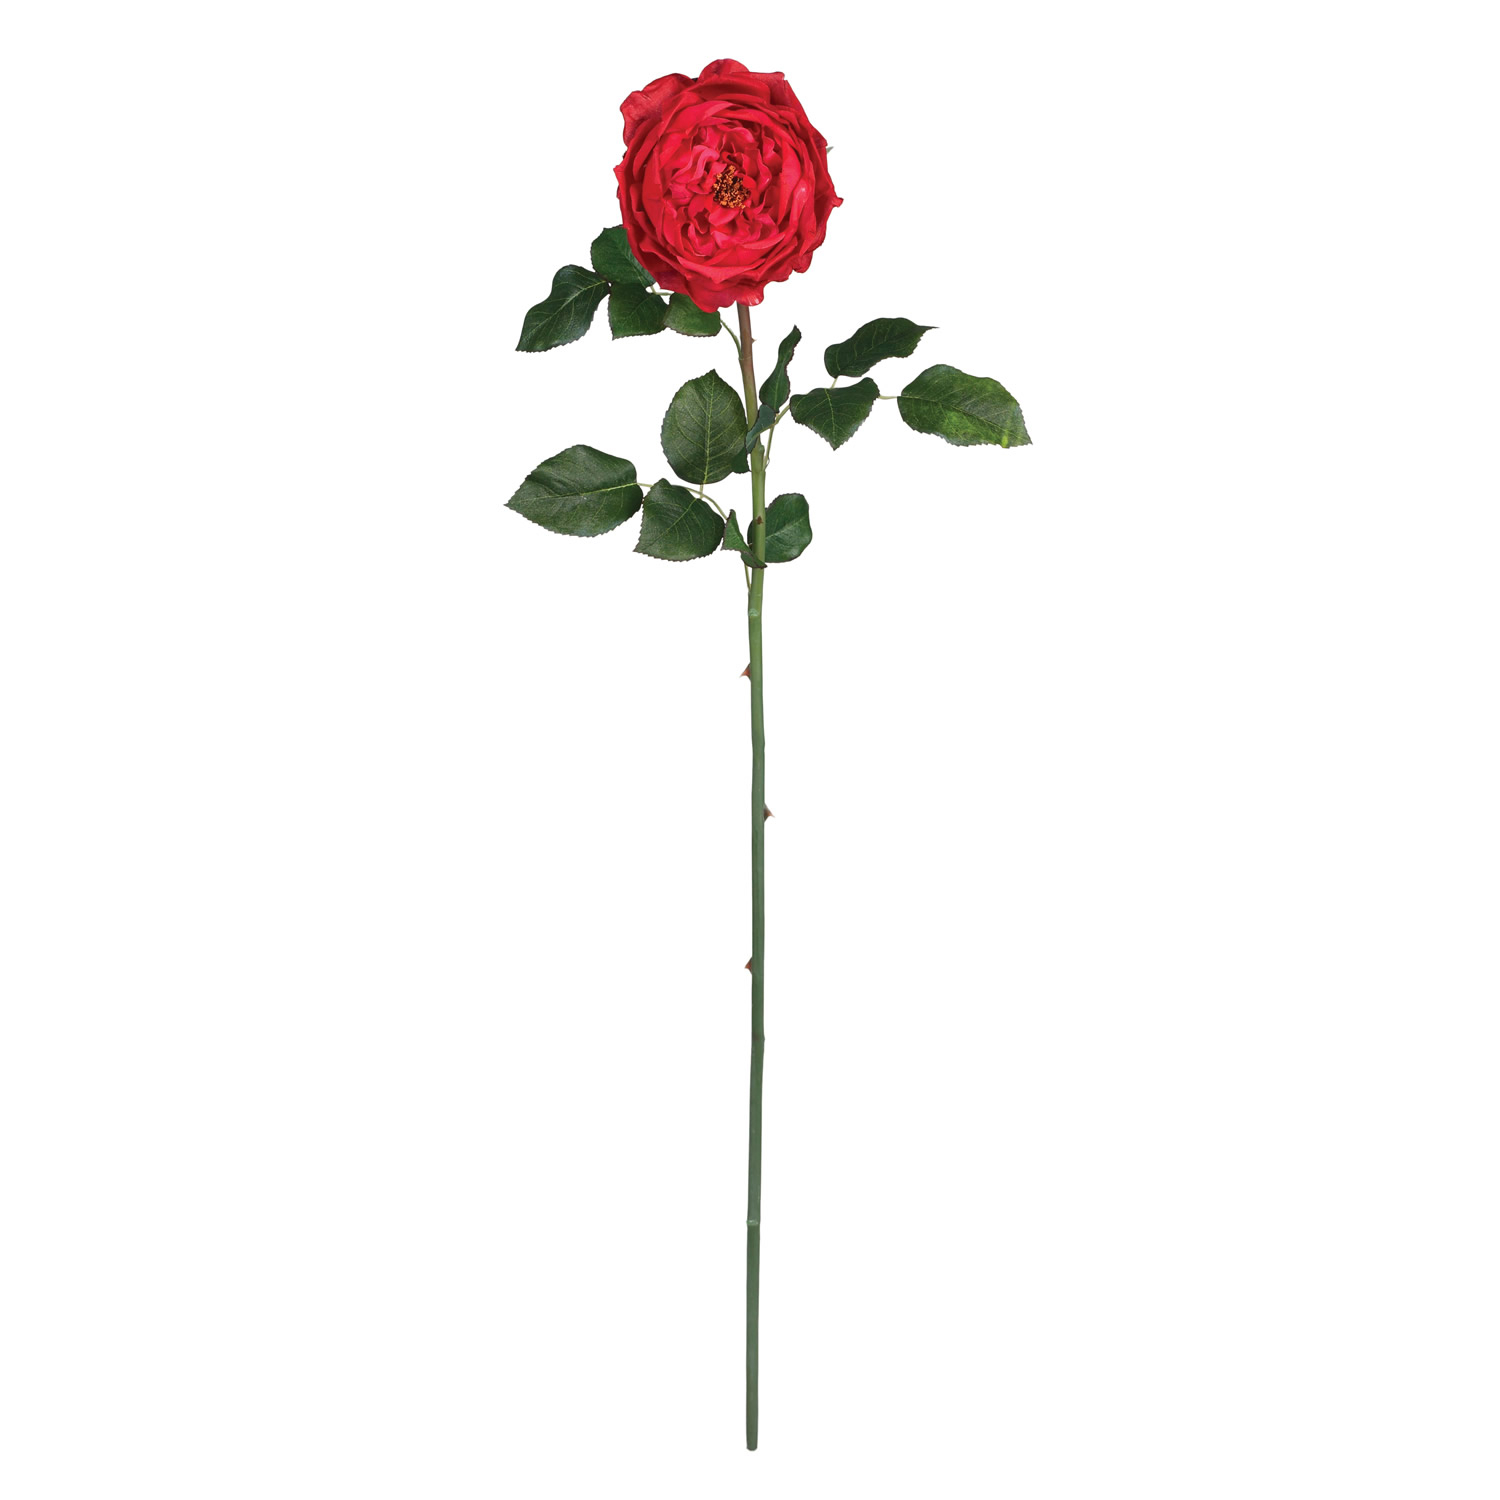 1500x1500 long stem rose drawing drawn rose long stem rose